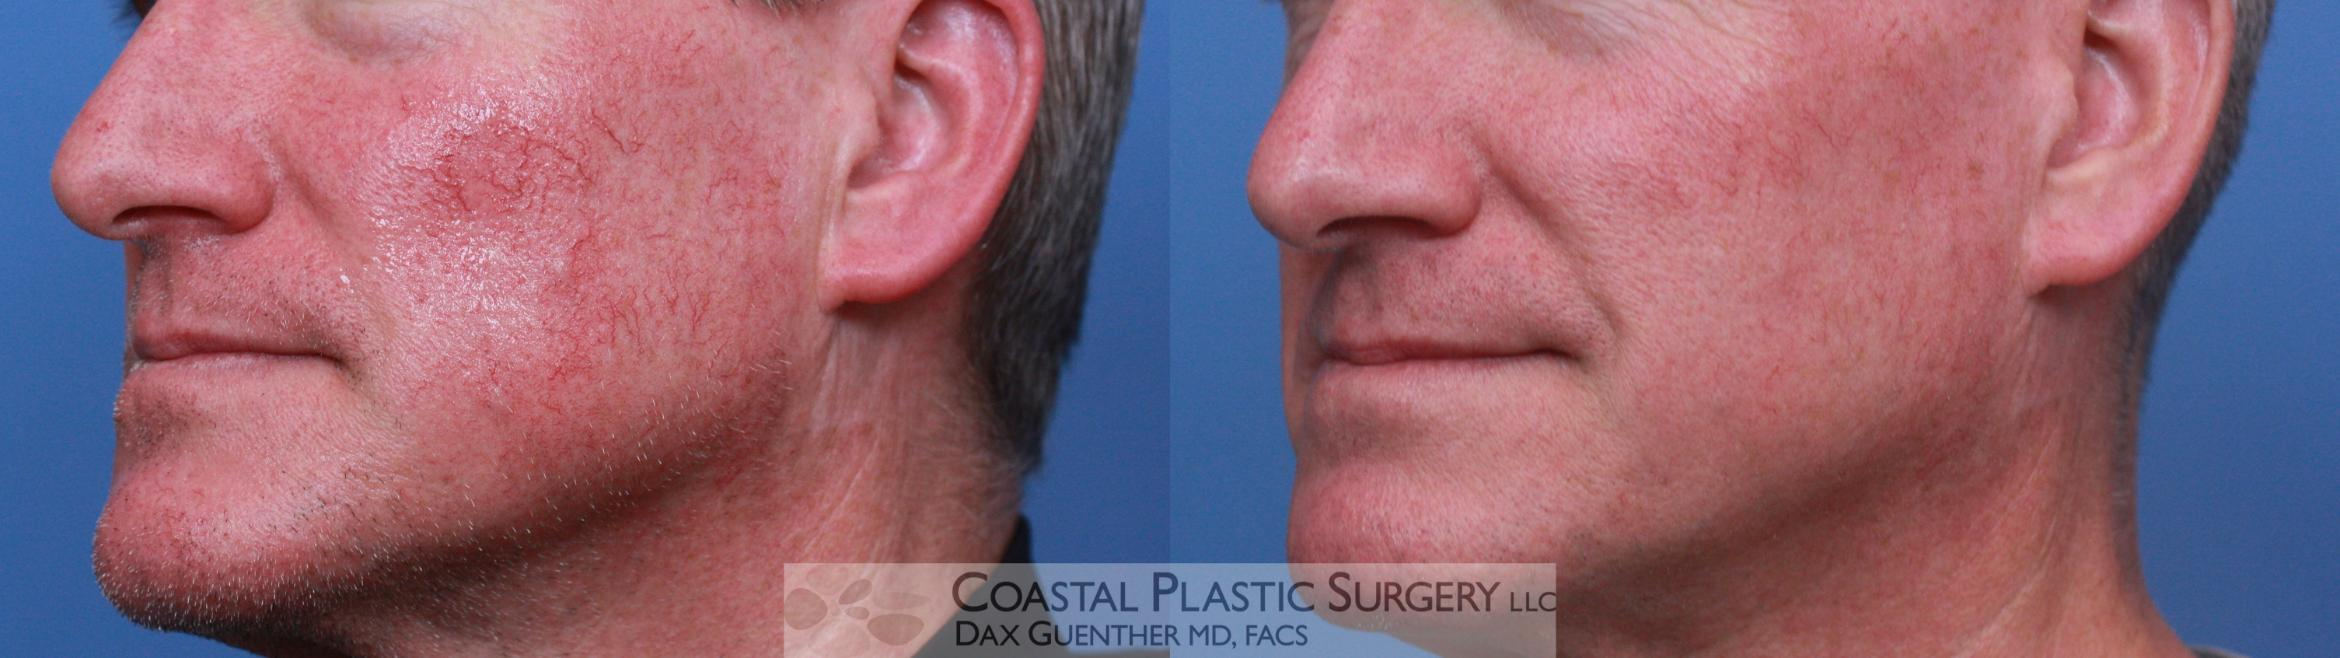 Chemical Peels & Lasers/Lights Before & After Photo | Hingham, Boston & Nantucket, MA | Dax Guenther, MD: Coastal Plastic Surgery